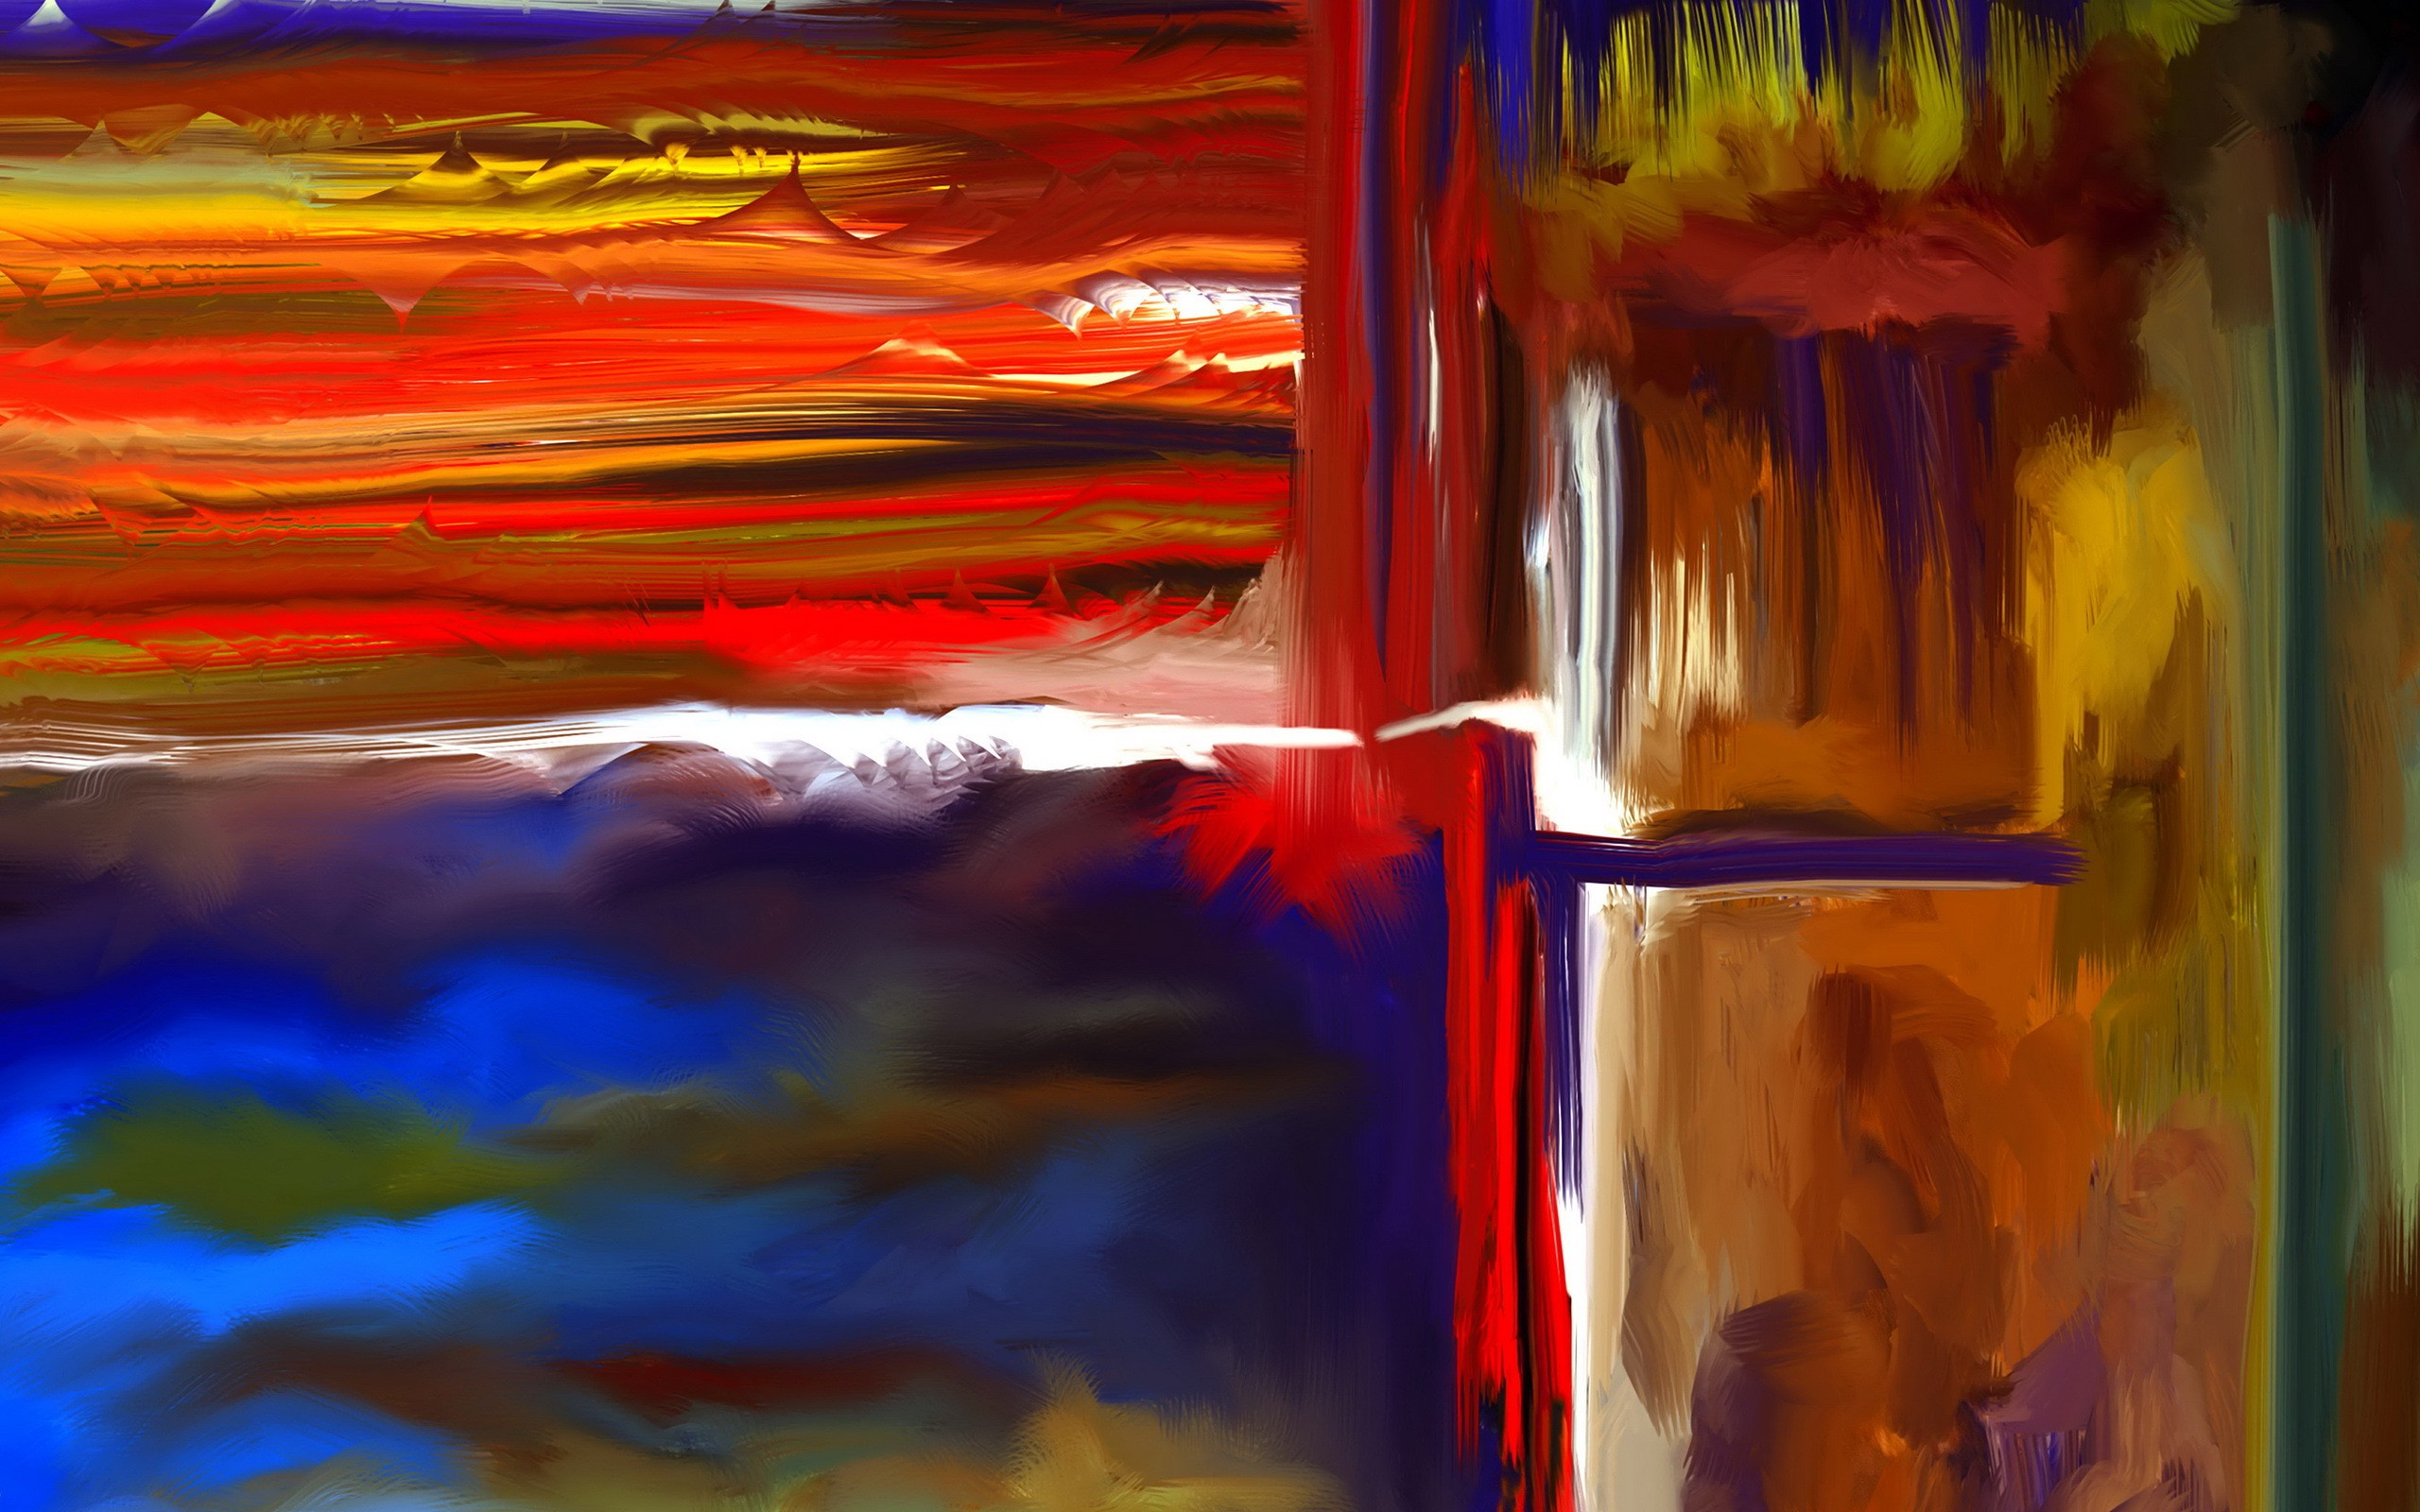 Abstract Painting Background - HD Wallpaper